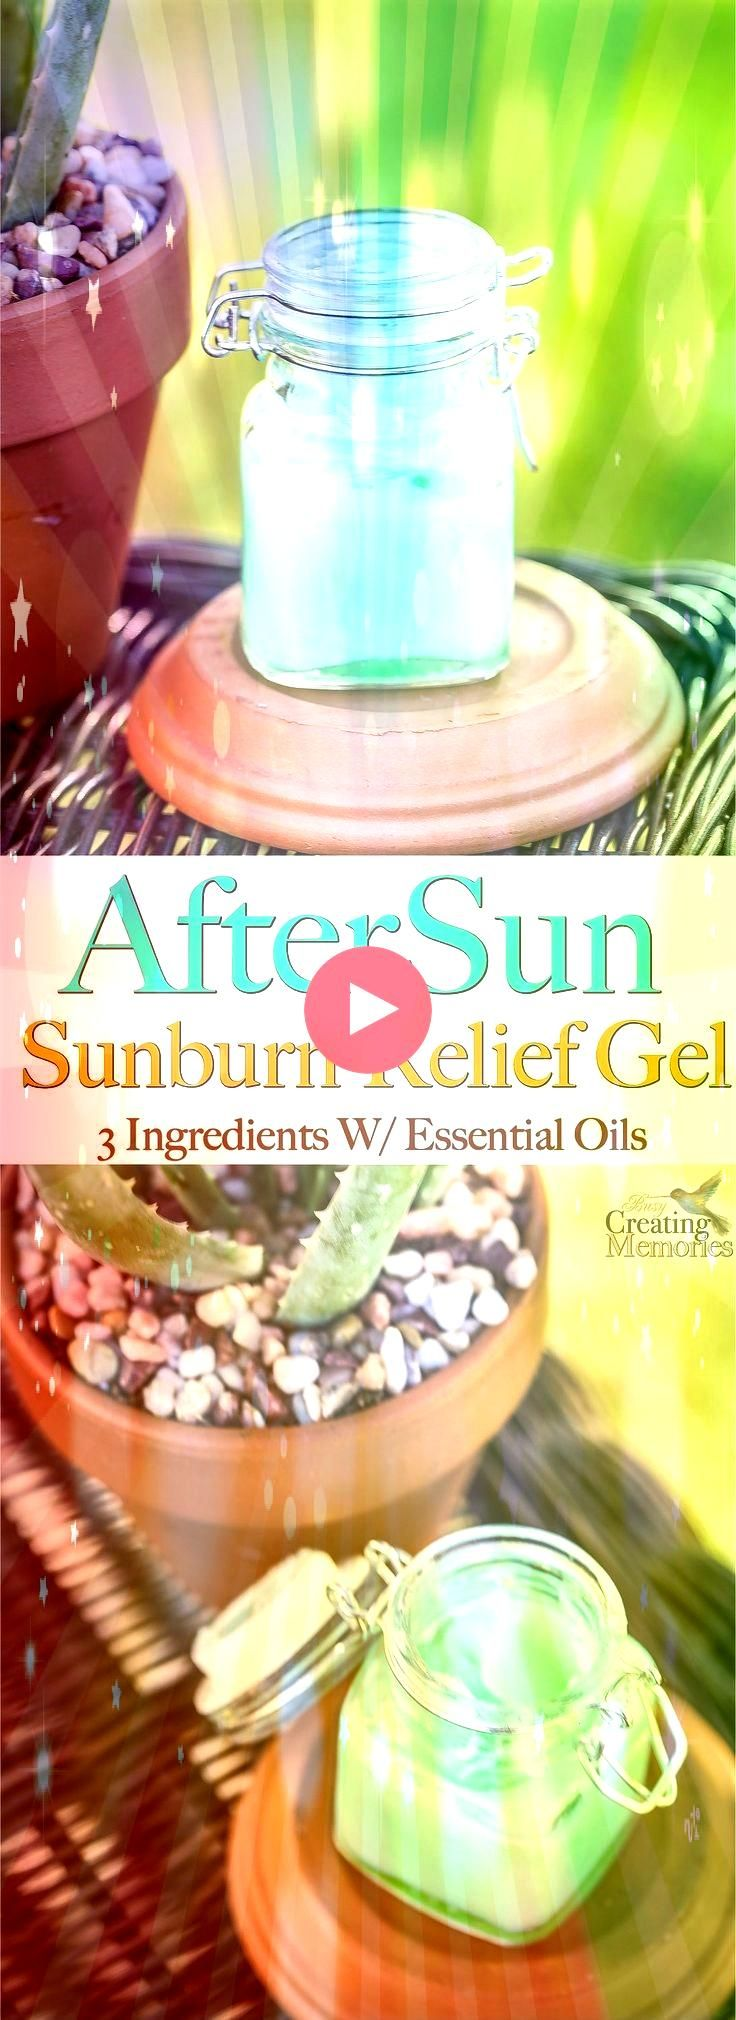 Homemade AfterSun Sunburn Relief Gel w 3 ingredients Say Goodbye to Painful Itchy Peeling sunburns This AfterSun Sunburn relief Gel instantly Soothes Cools heals and mois...